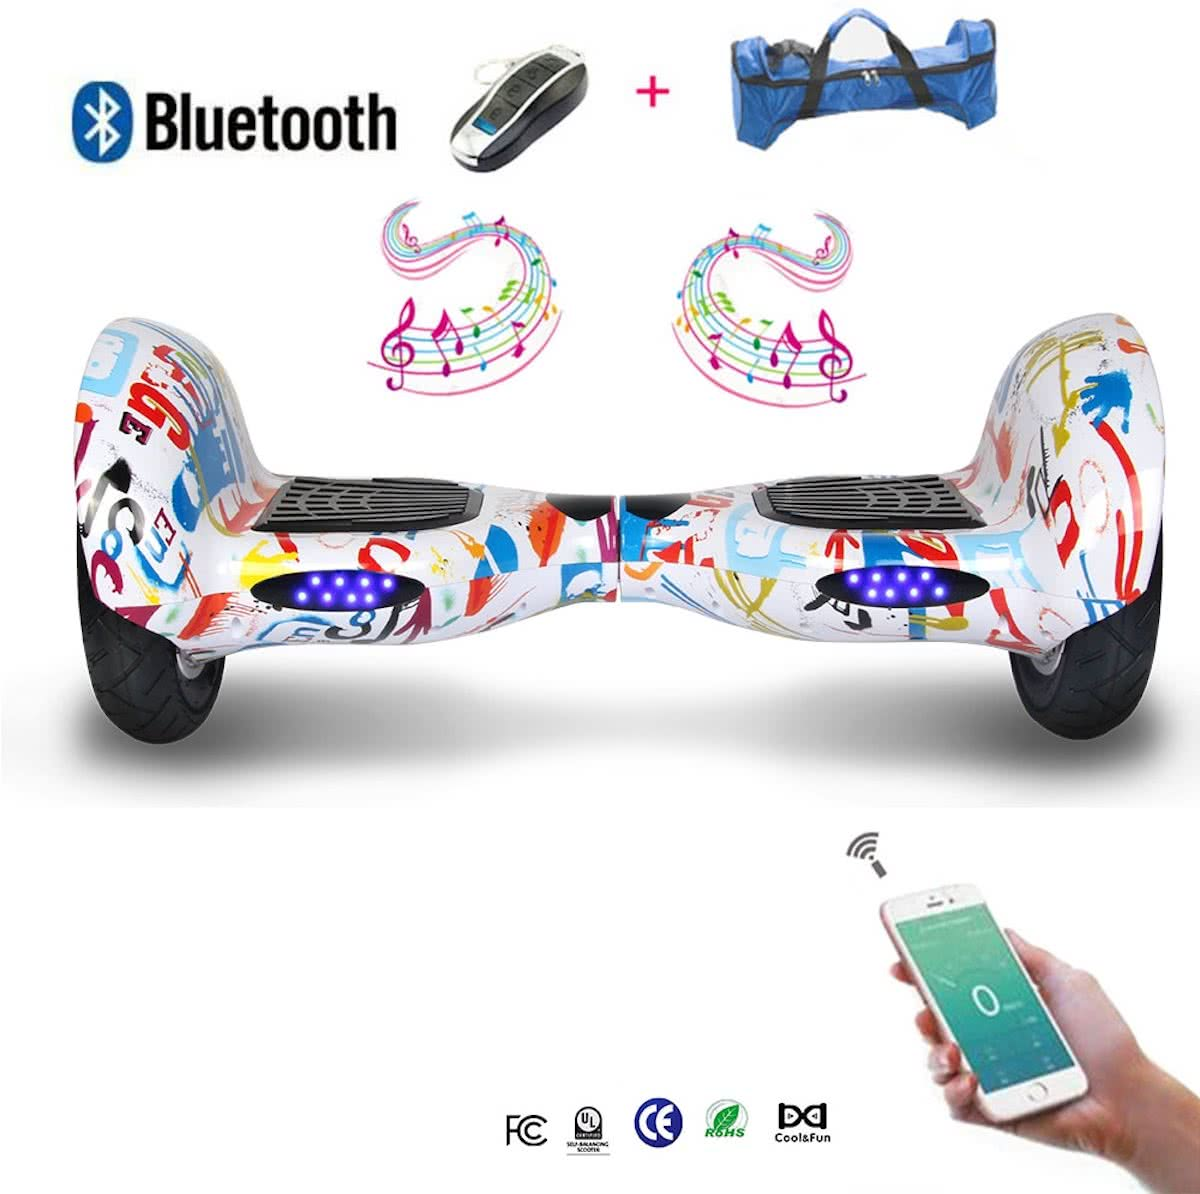 COOL & FUN Hoverboard Bluetooth, Elektrische Scooter Zelfbalanserende, gyropod verbonden 10 inch hiphop / graffiti design